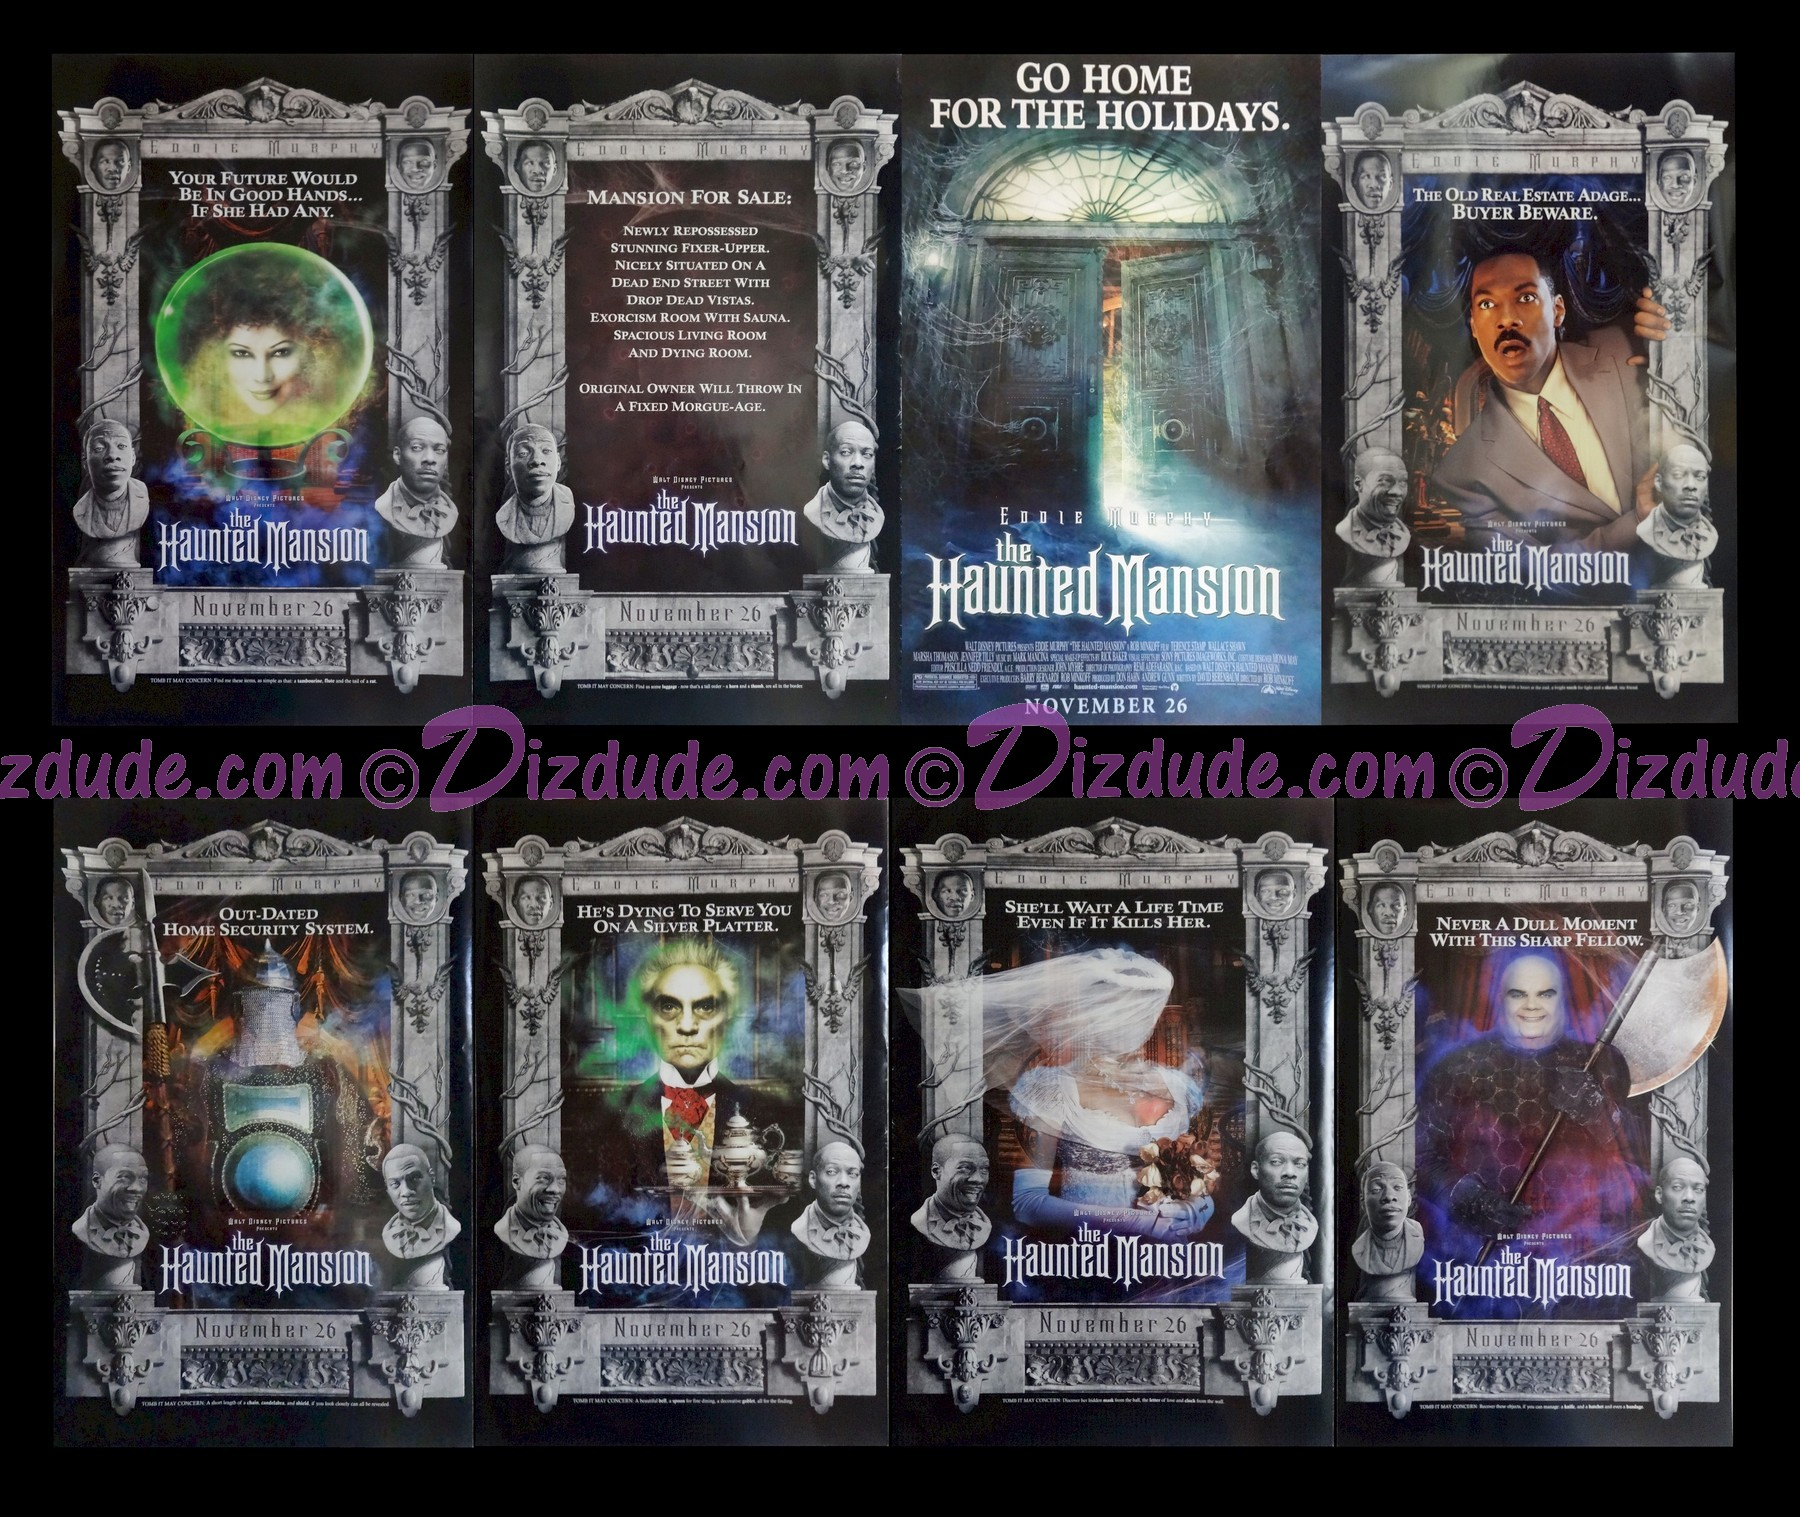 """Disney Movie Poster """"The Haunted Mansion"""" From 2003 staring Eddie Murphy, Jennifer Tilly, Terence Stamp, Nathaniel Parker and Marsha Thomason © Dizdude.com"""